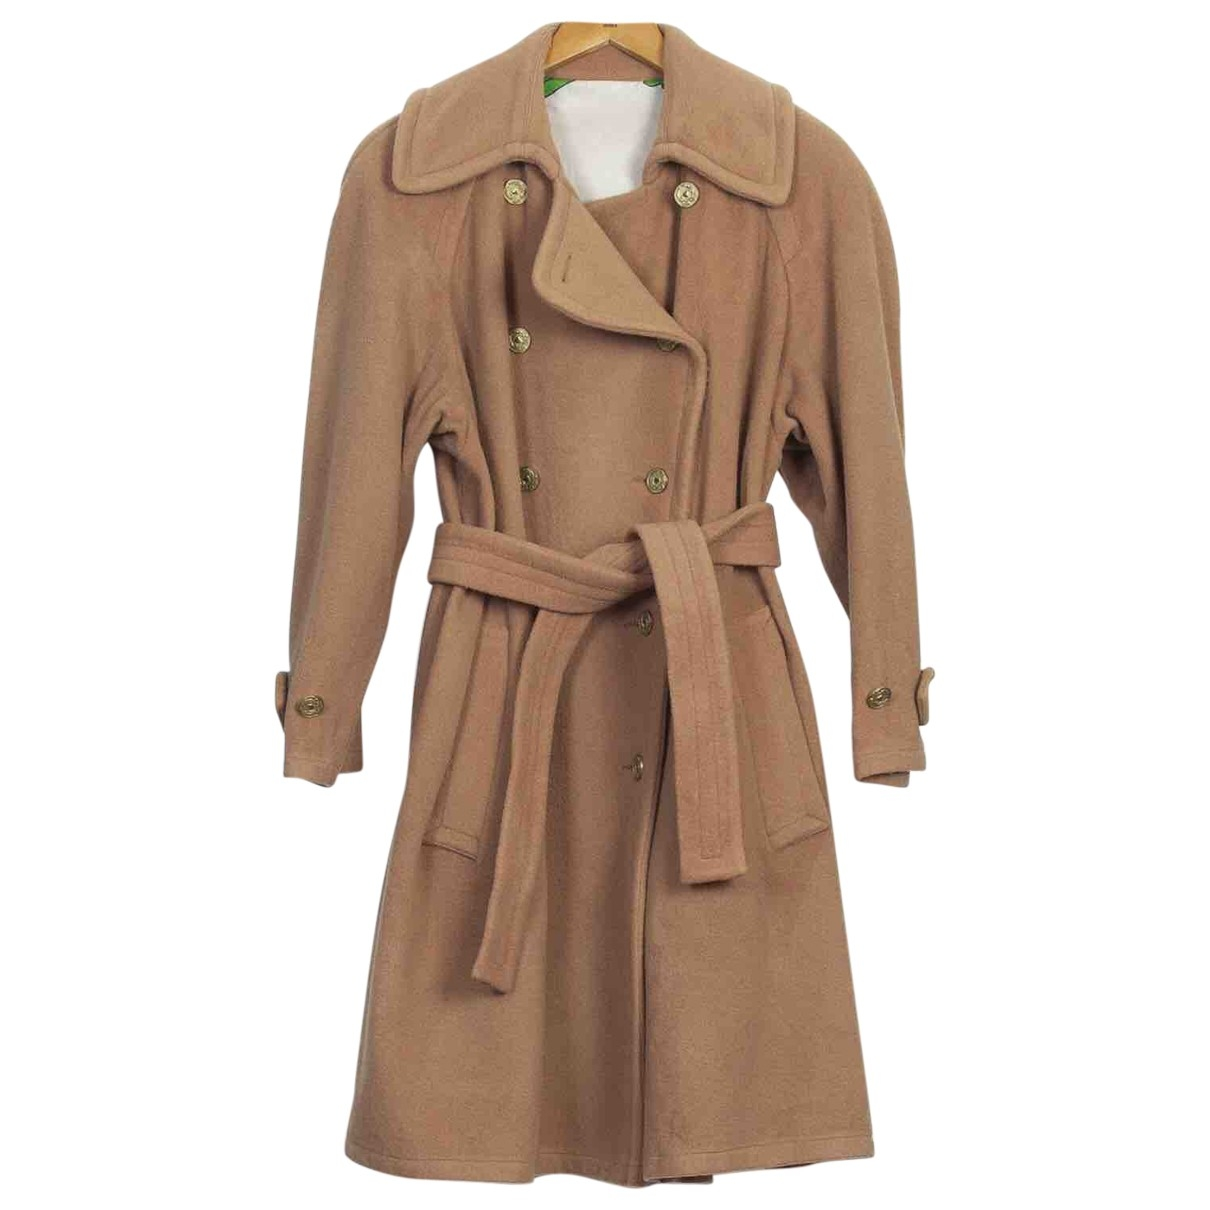 Moschino Cheap And Chic \N Camel Wool coat for Women M International